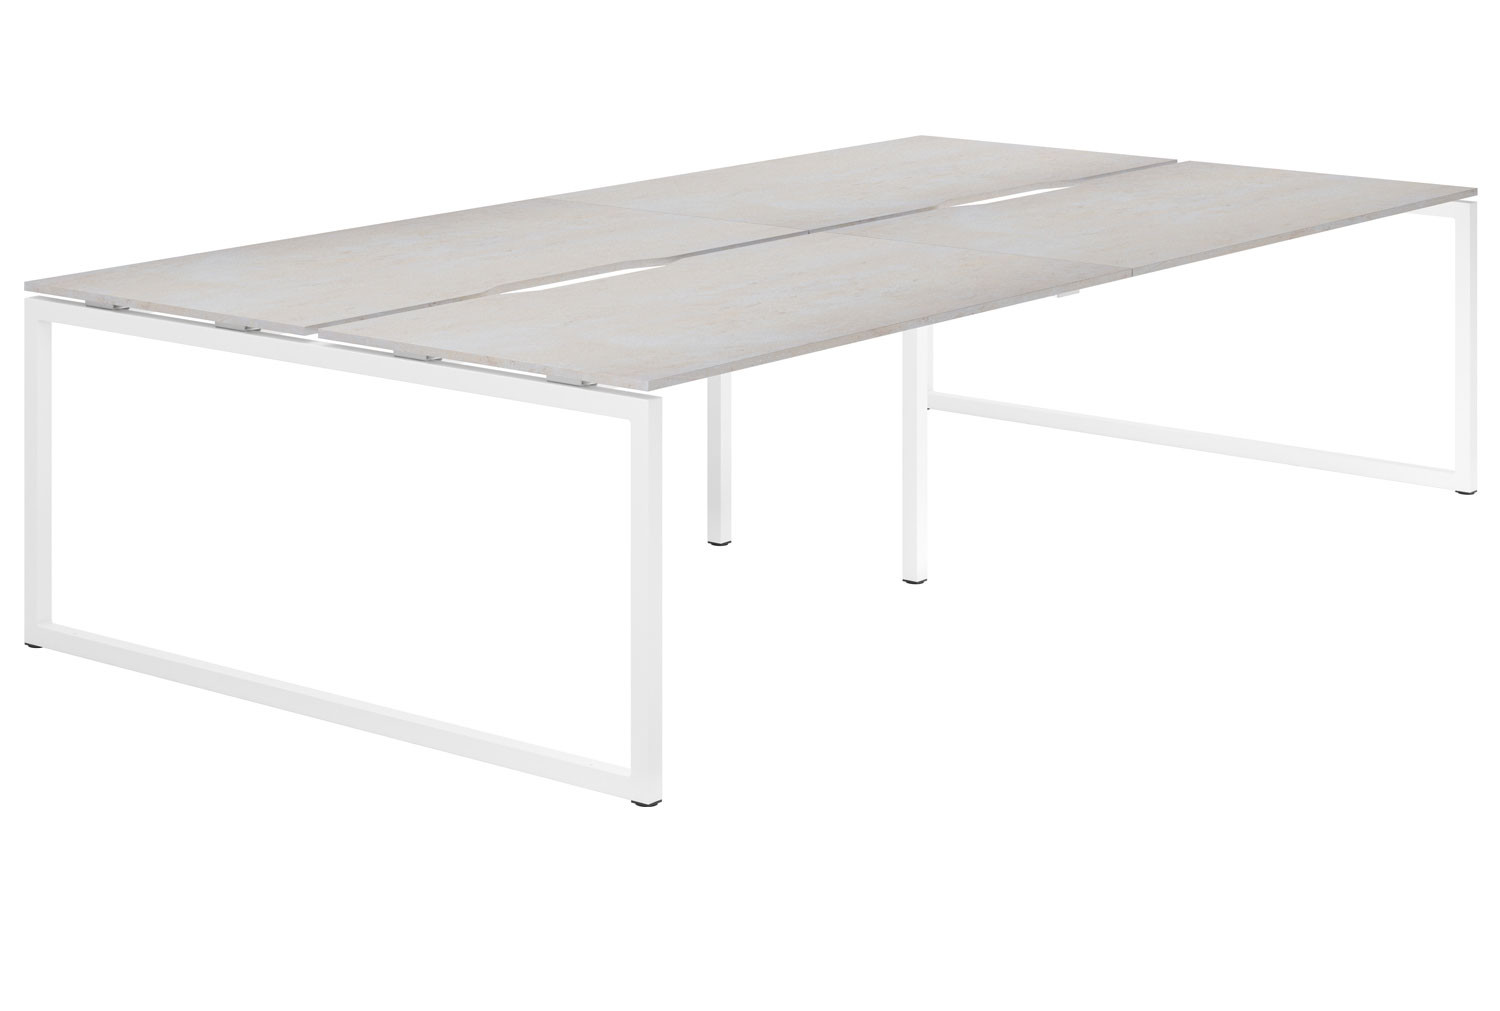 Lasso Hooped Leg 4 Person Back To Back Bench Desk (Concrete)